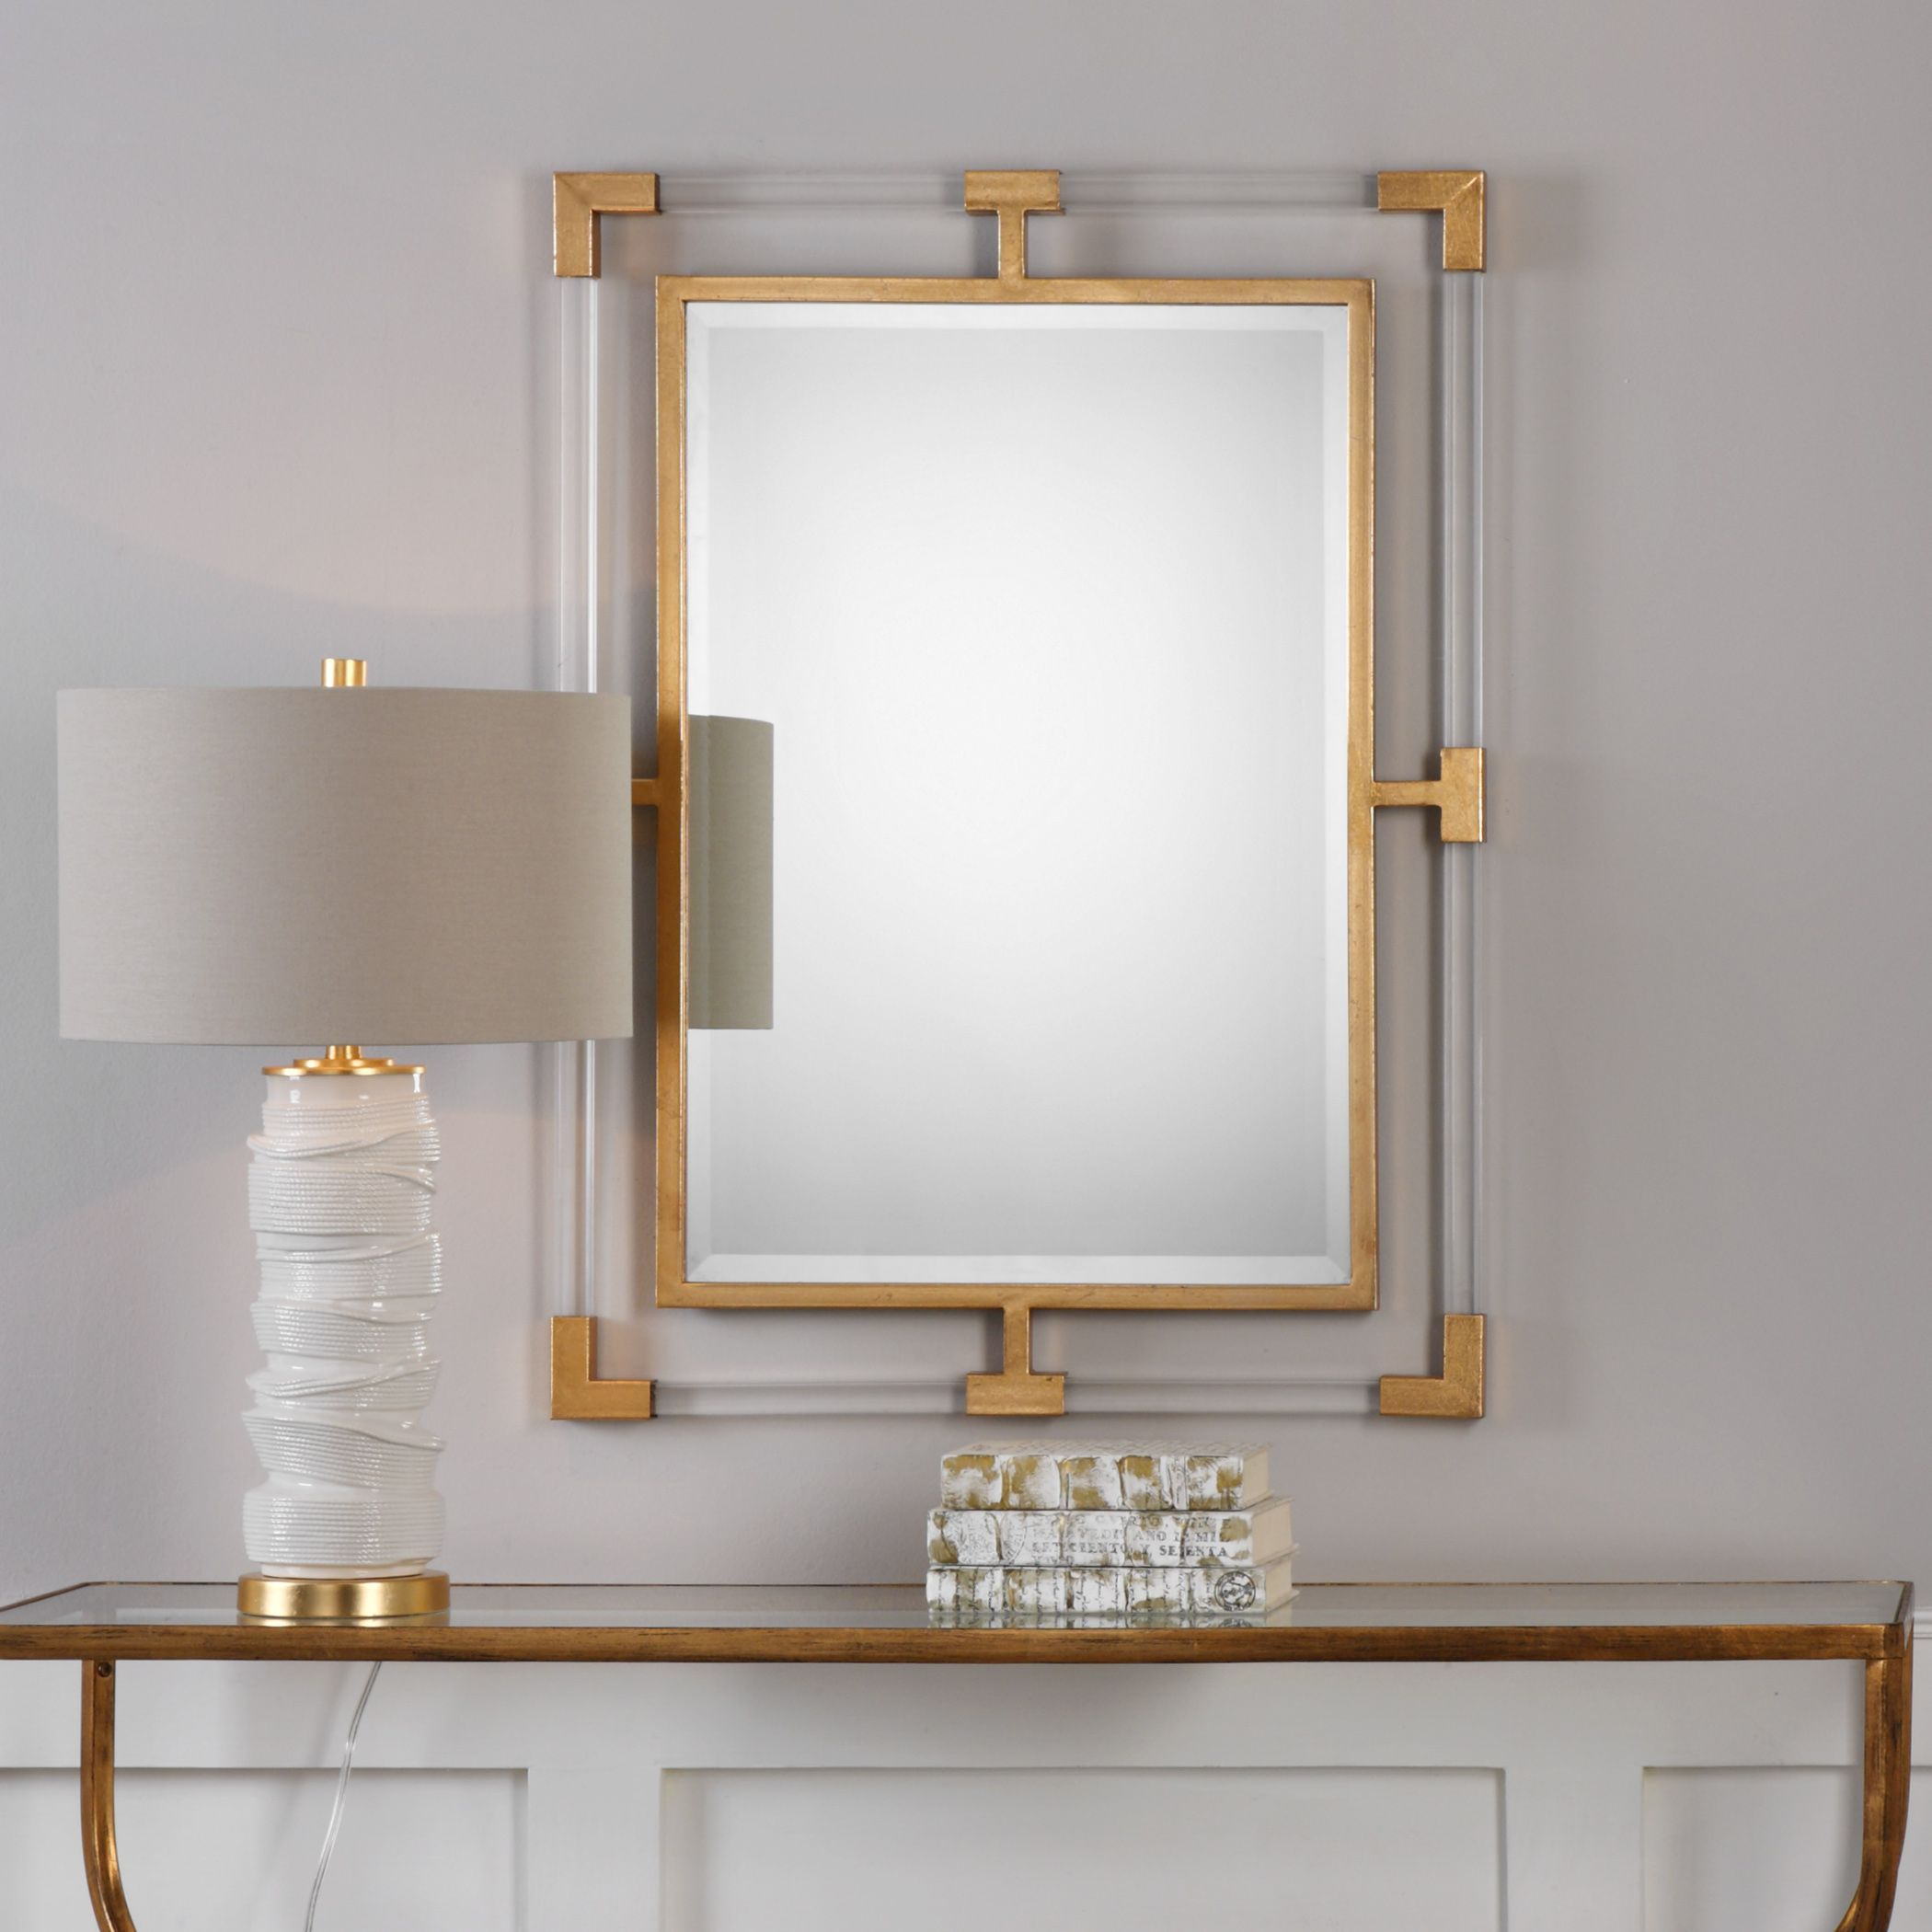 gray wall mirror contemporary bathroom wall buy mirrors online at overstockcom our best decorative accessories deals